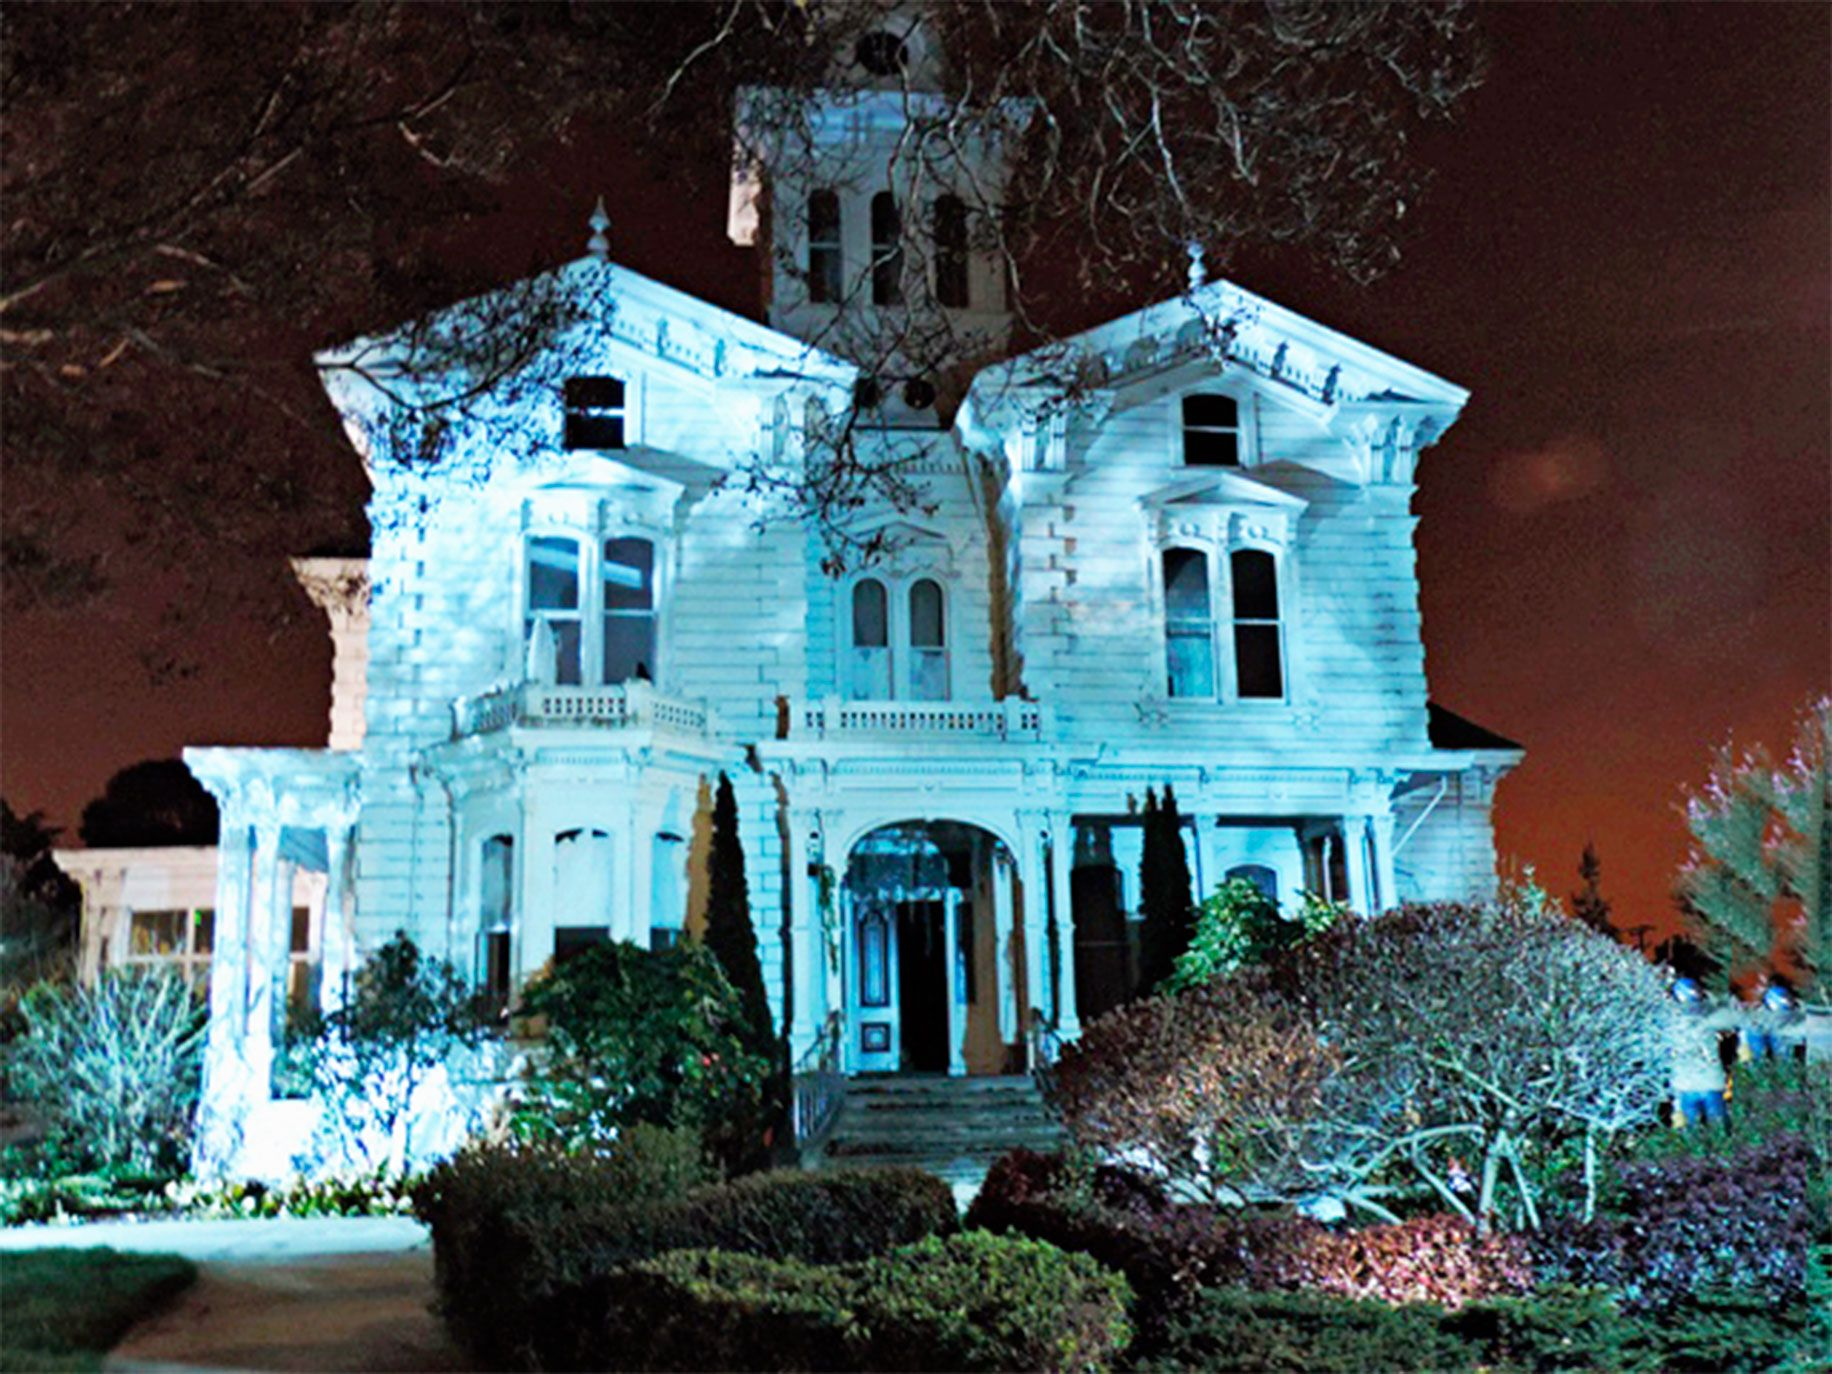 A tour of Meek Mansion is the perfect way to celebrate Halloween.